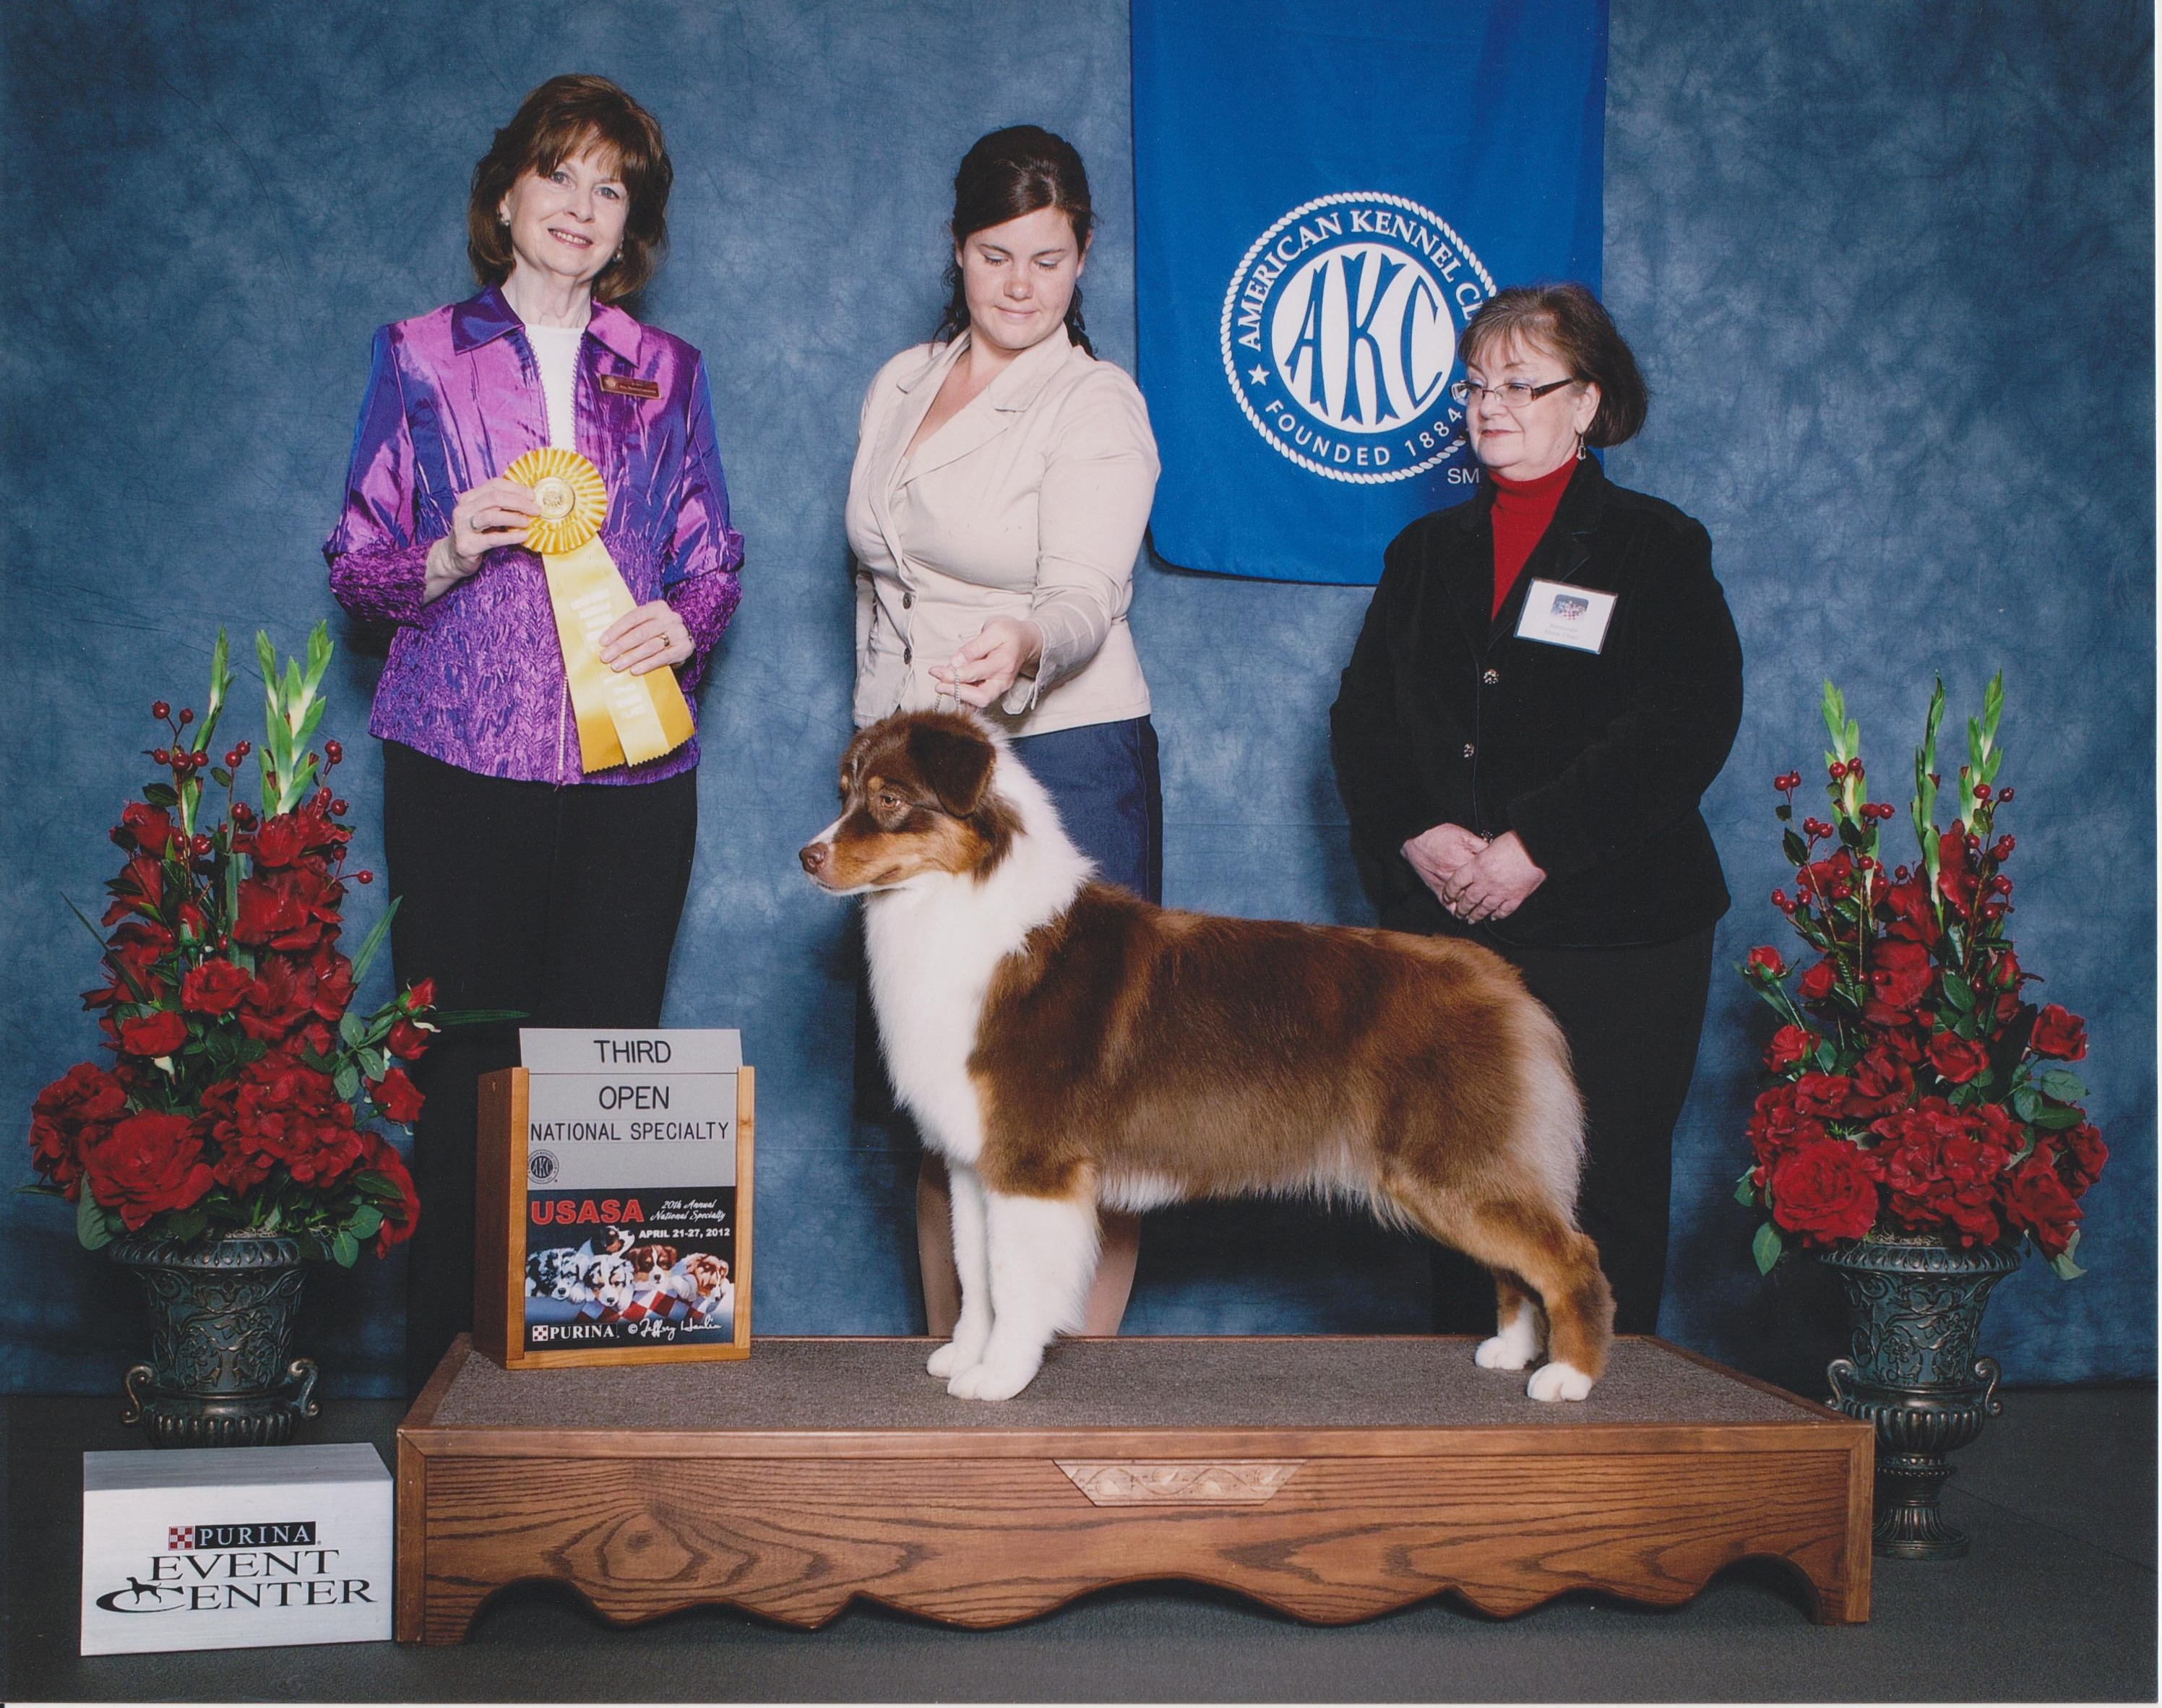 American Kennel Club Third Open 001